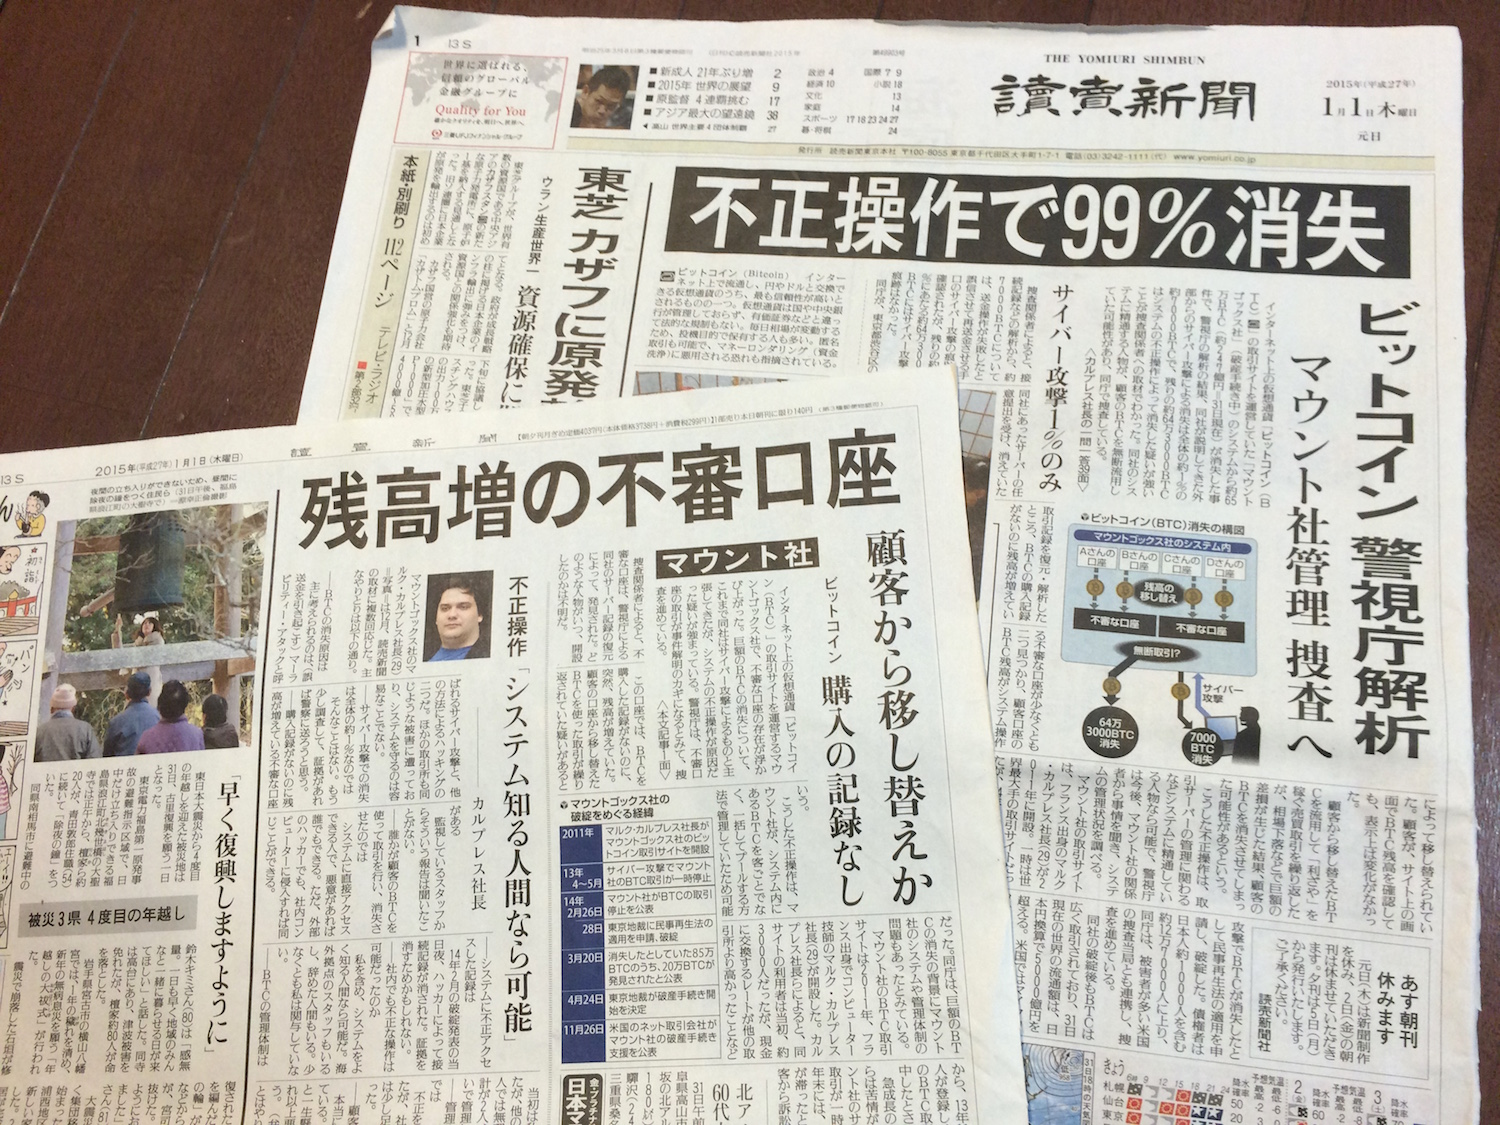 Japanese newspaper readers began the year with bitcoin as front-page news